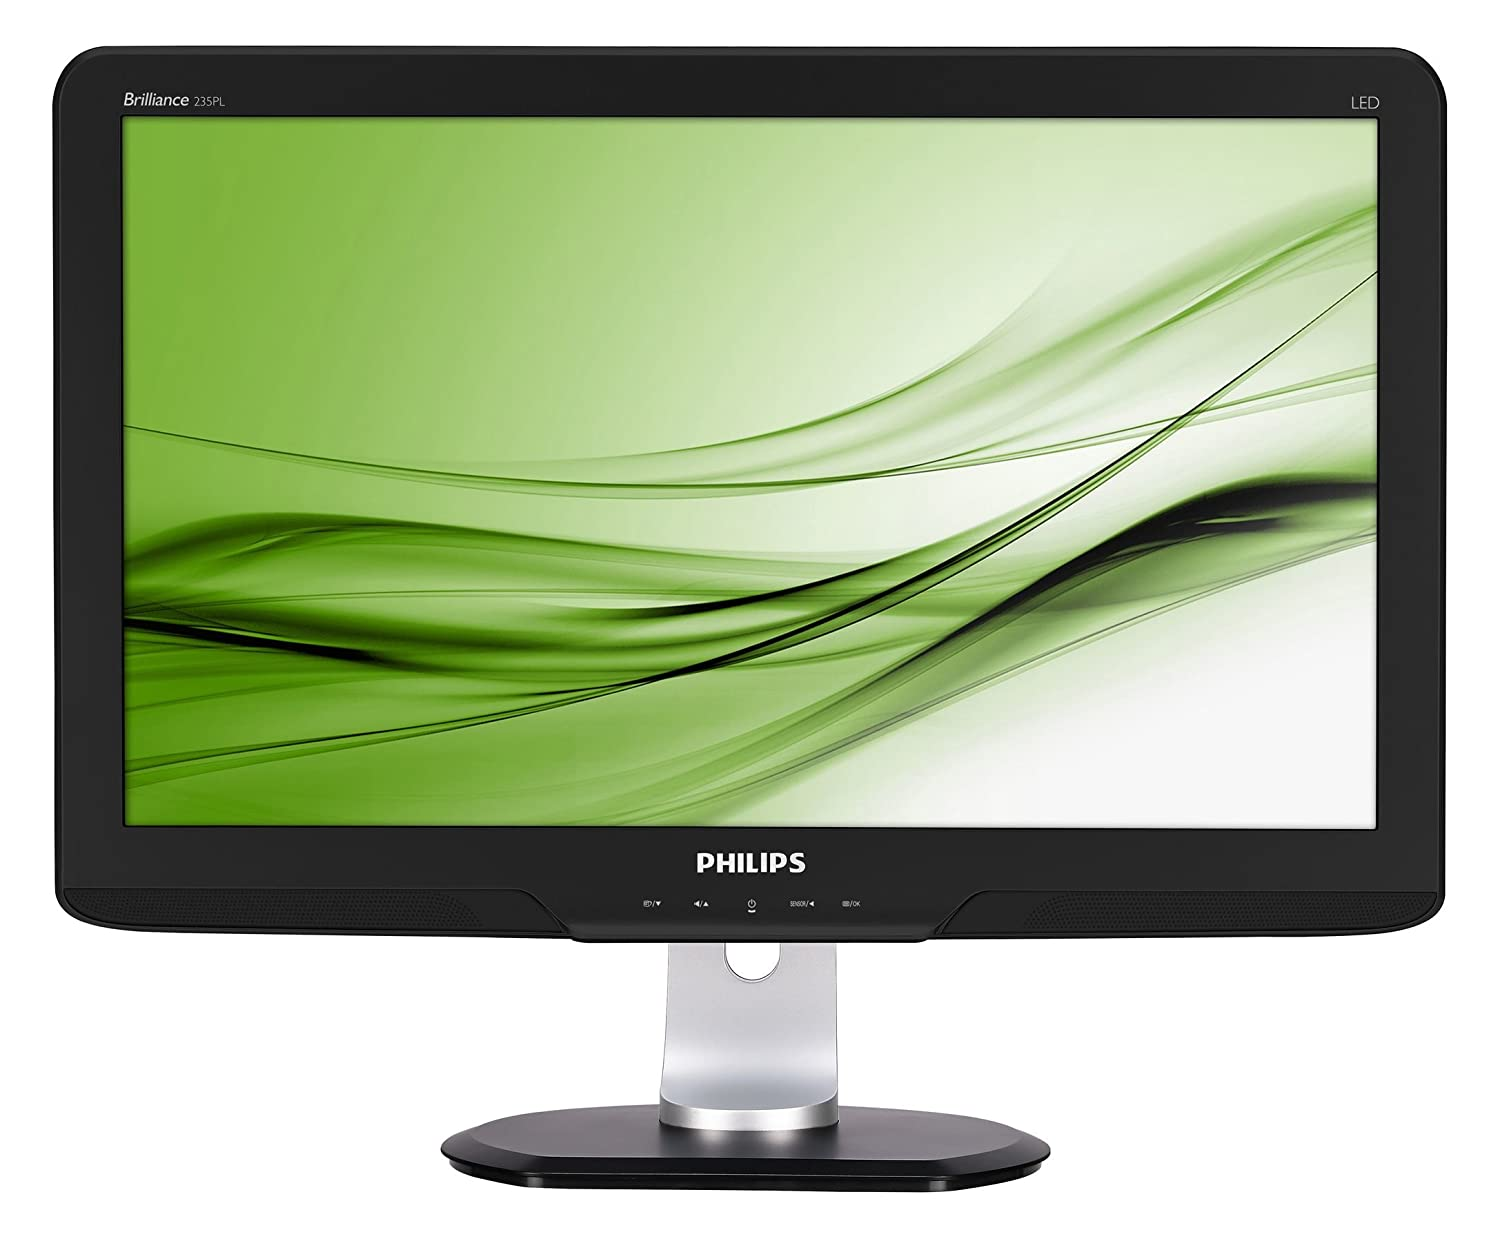 PHILIPS 235PL2ES00 MONITOR WINDOWS 7 X64 DRIVER